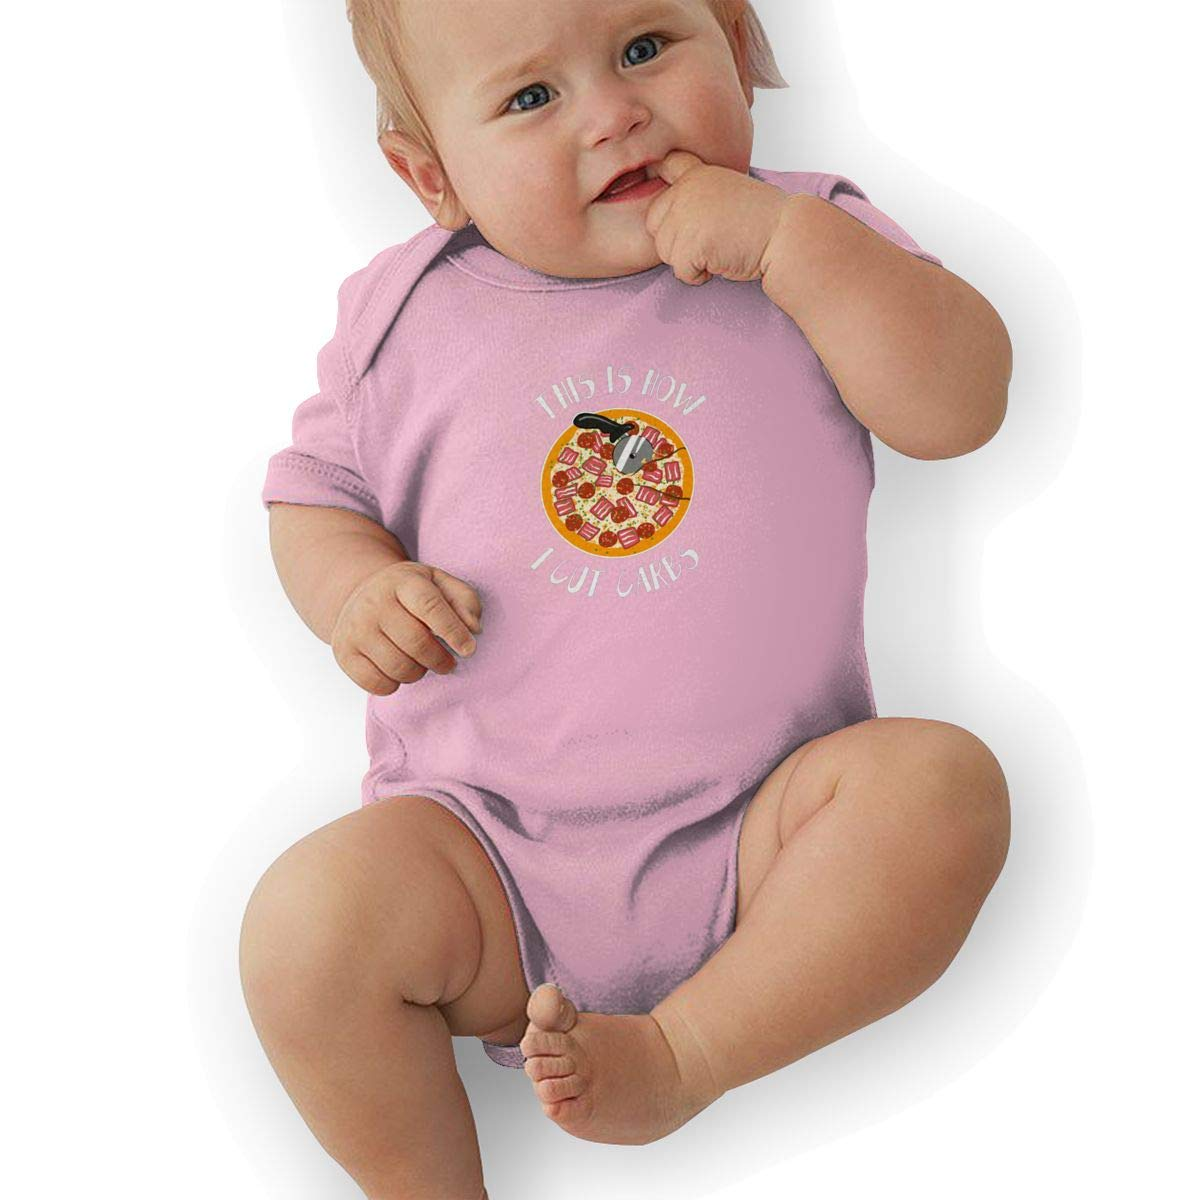 Bodysuits Clothes Onesies Jumpsuits Outfits Black HappyLifea This is How I Cut Carbs Baby Pajamas